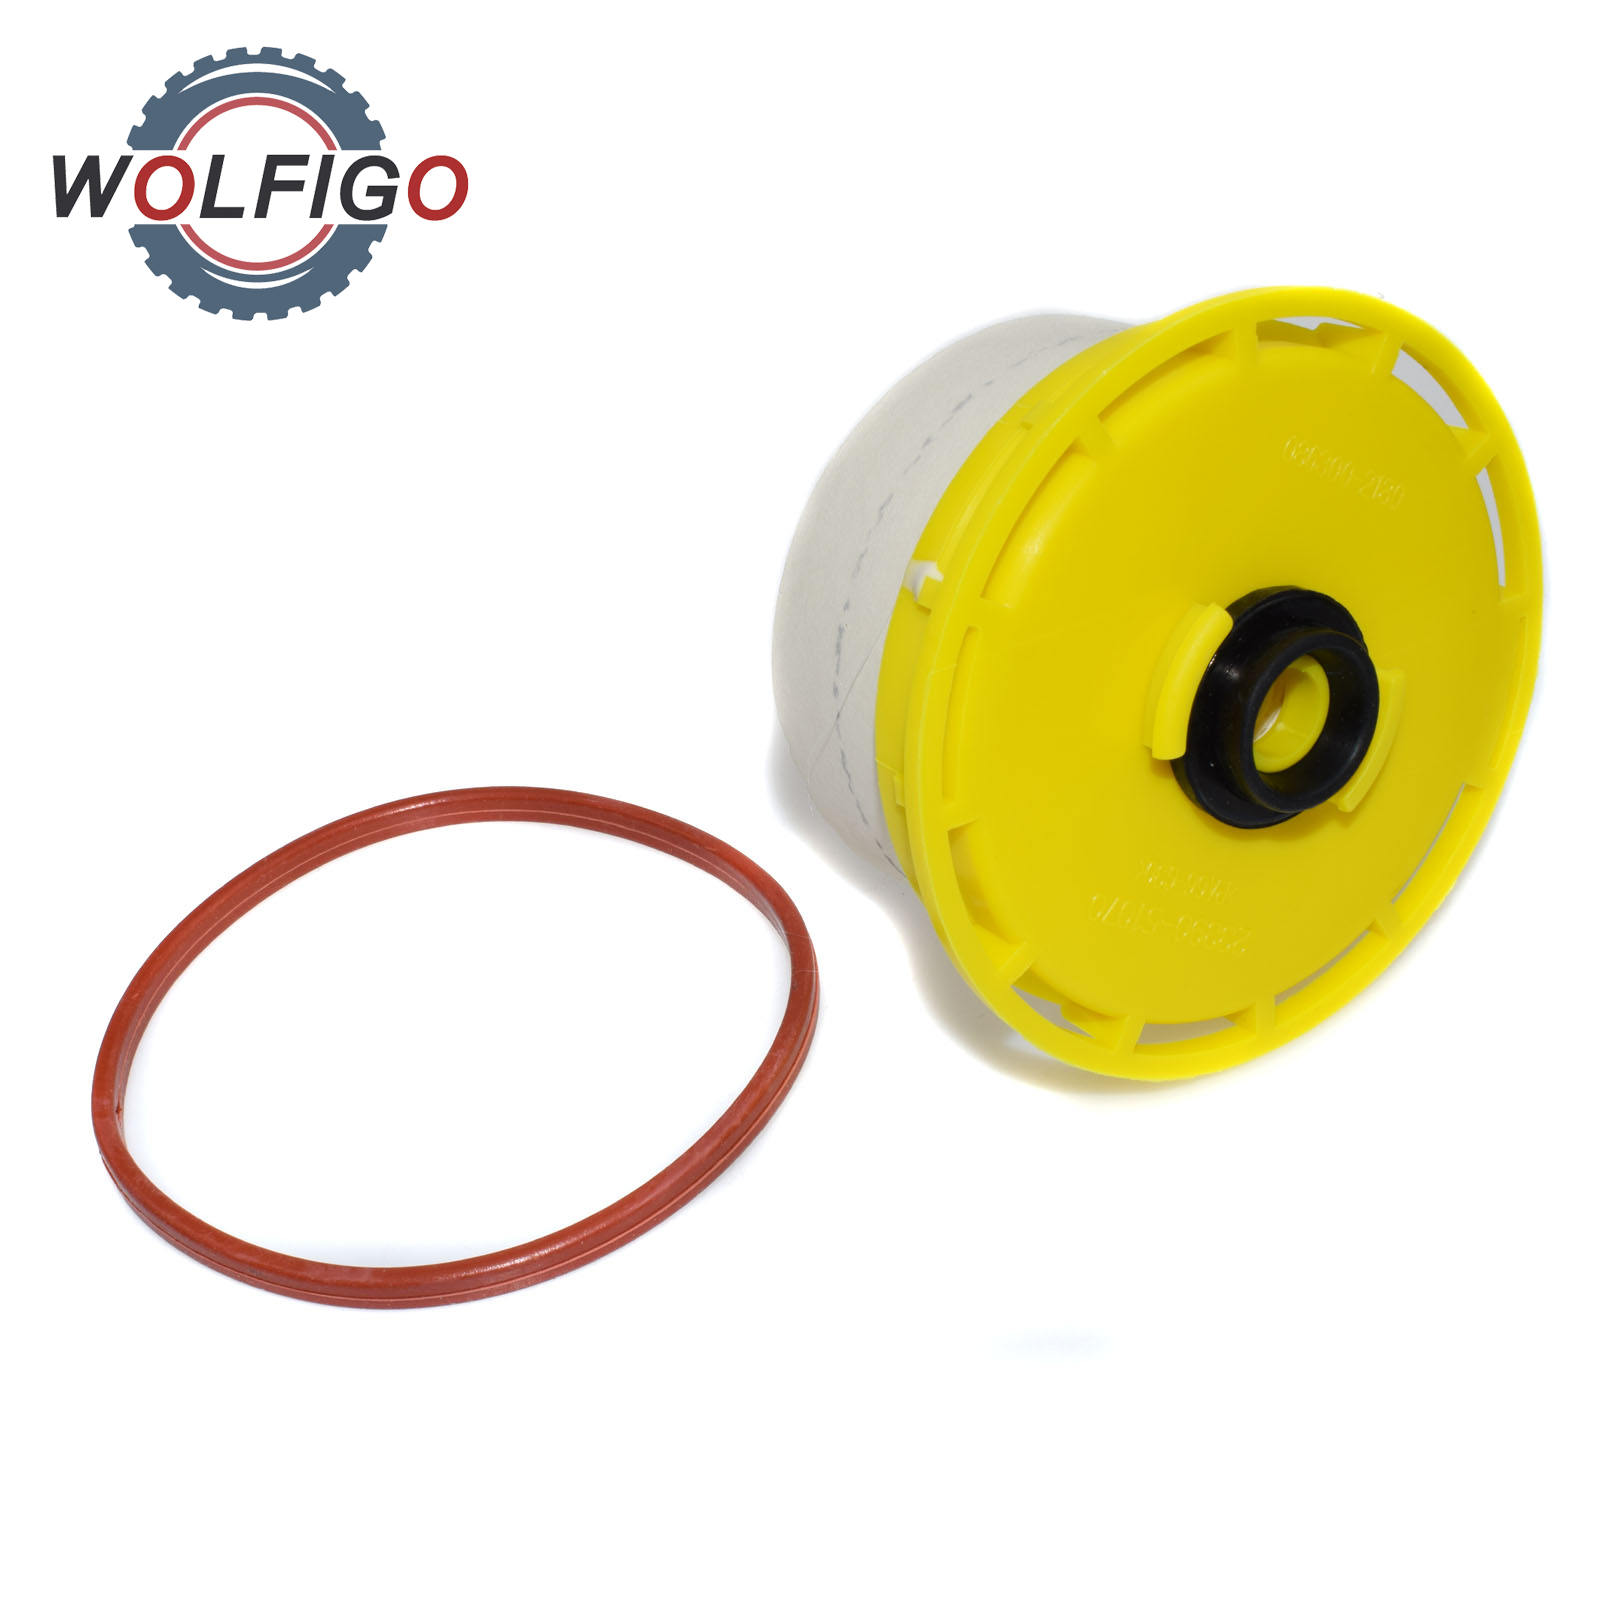 2006 Jeep Commander Fuel Filter Wolfigo For Toyota Land Cruiser 70 200 202 Lexus Lx450d 460 570 23390 51070 2339051070 5102023390 In Filters From Automobiles